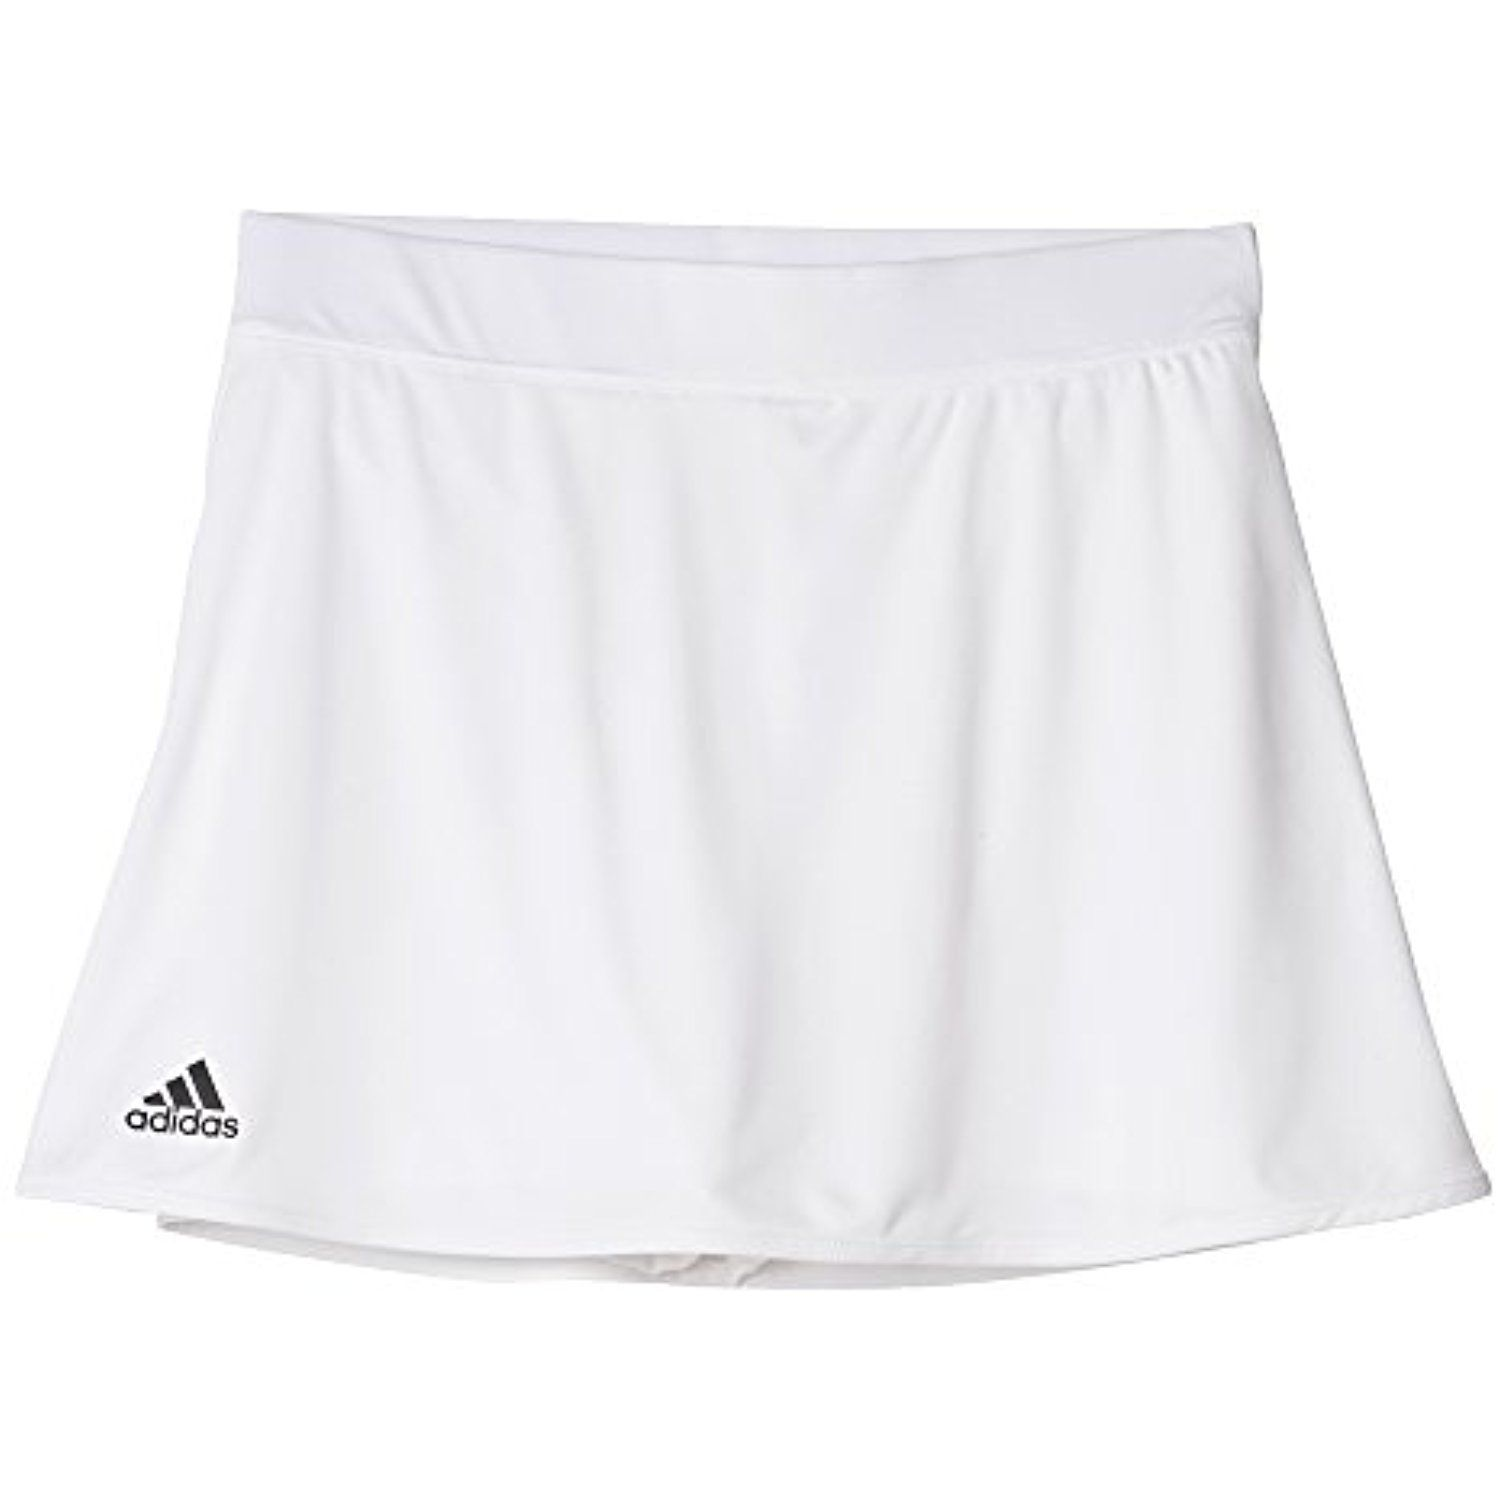 Adidas Girl S Tennis Club Skirt Continue To The Product At The Image Link This Is An Affiliate Link Skirts Adidas Girl Club Skirts Skirts